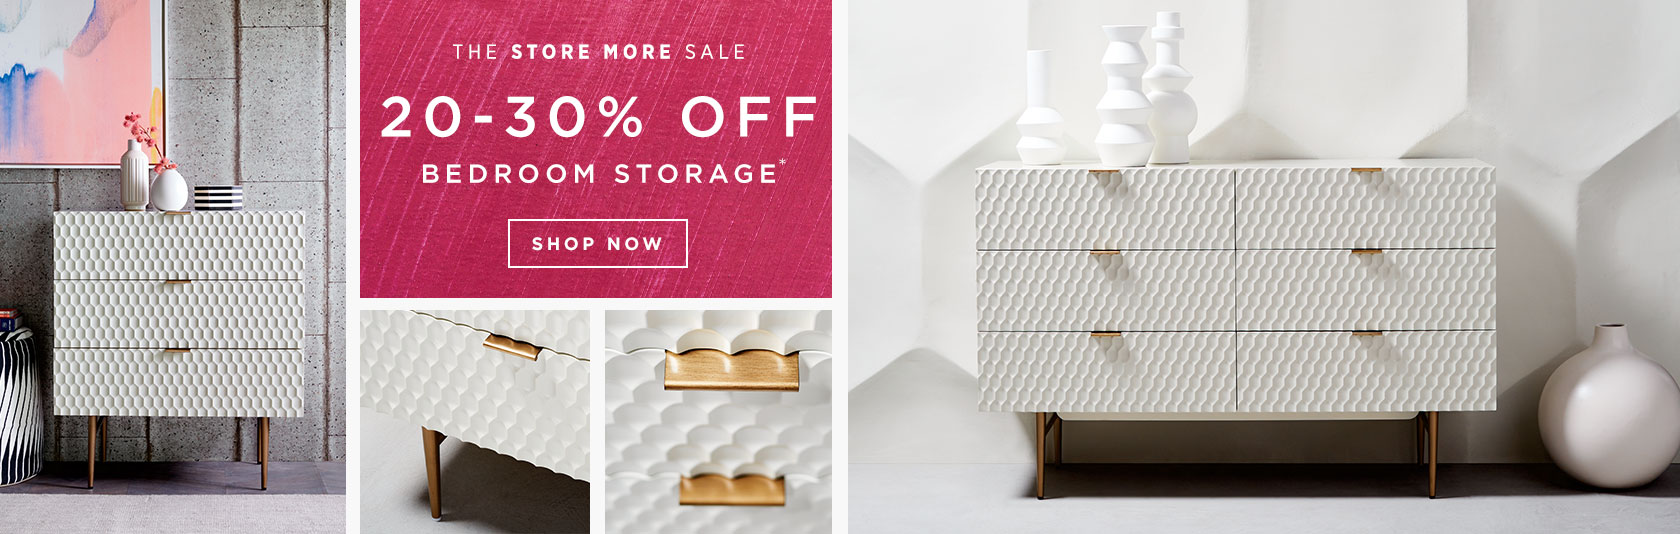 20-30% Off Bedroom Storage